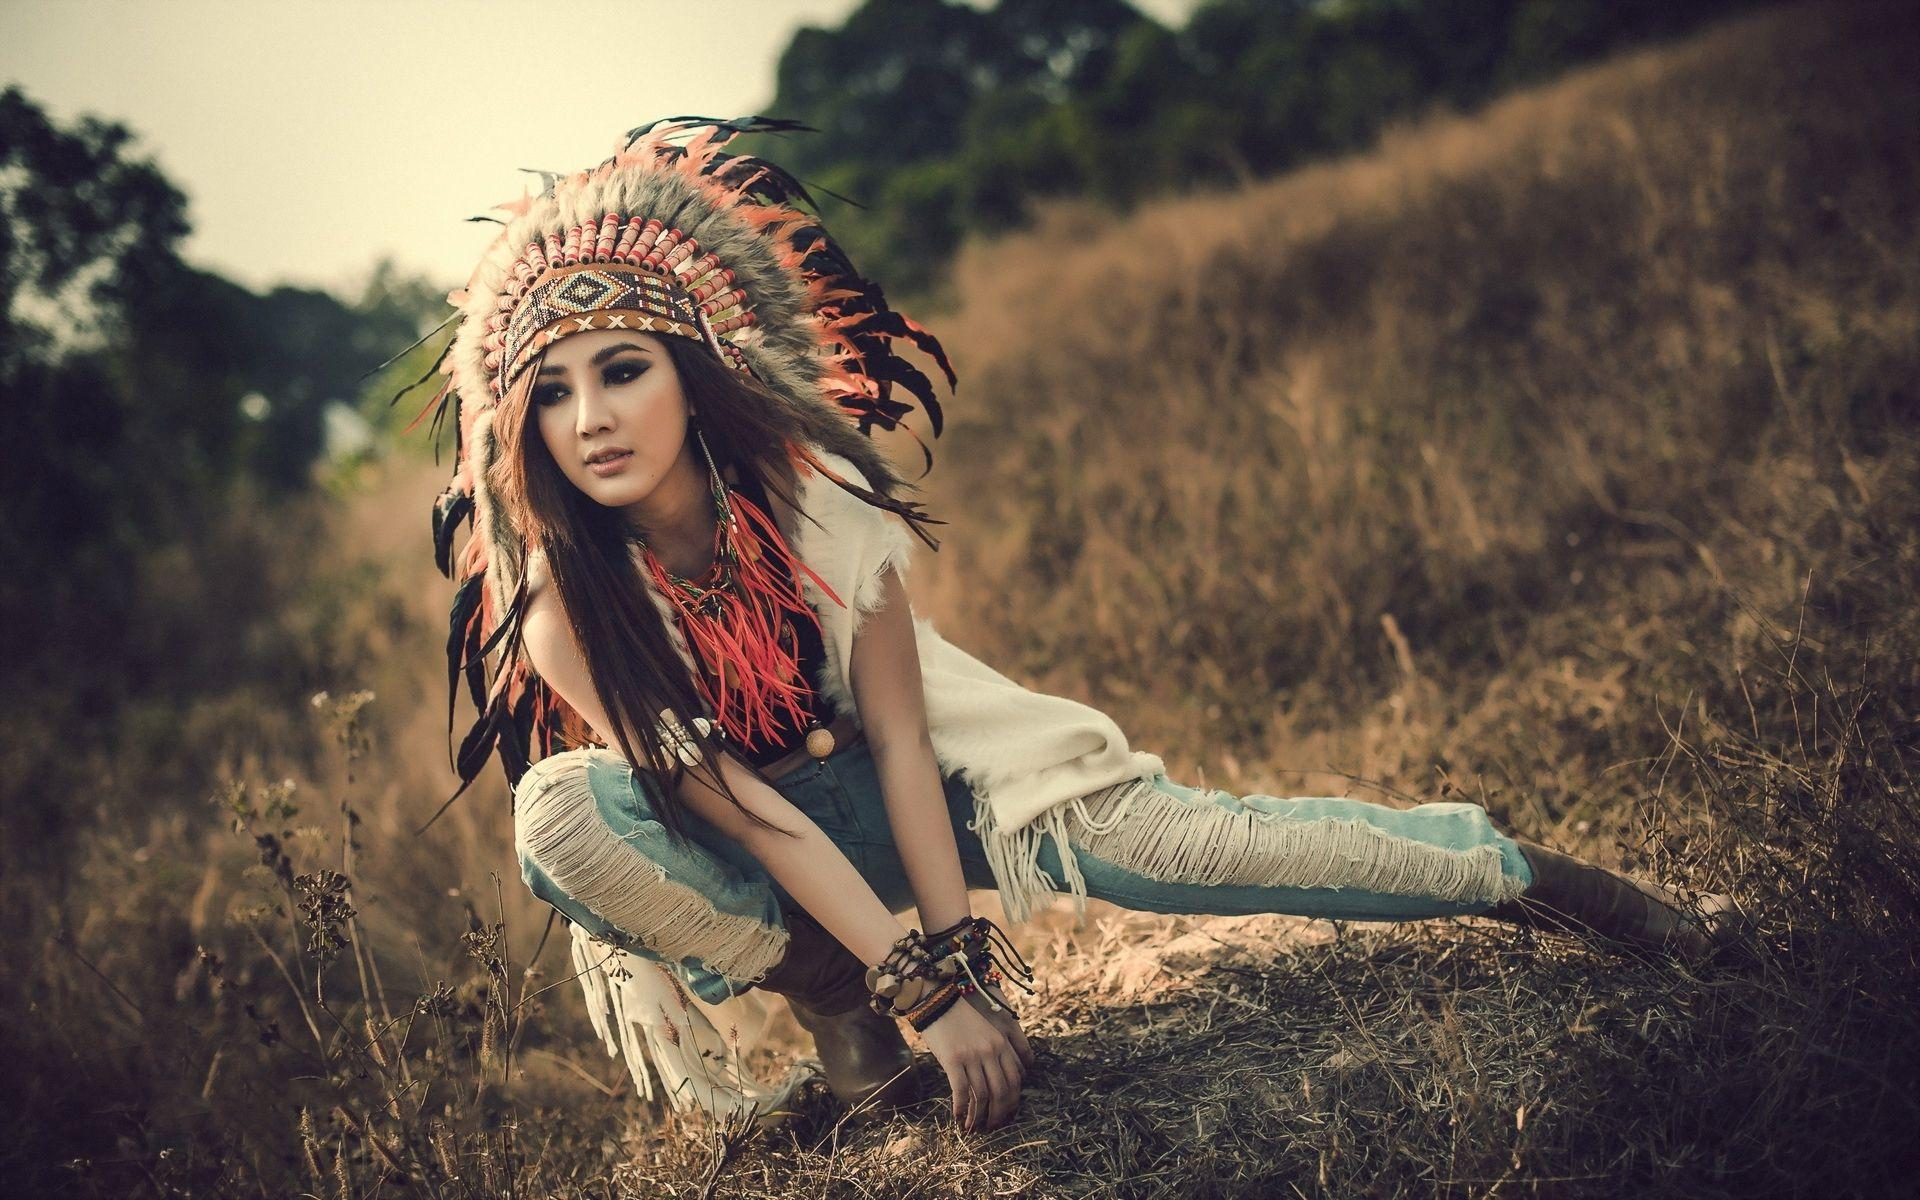 Native American Headdress Girls Wallpapers Wallpaper Cave HD Wallpapers Download Free Images Wallpaper [1000image.com]